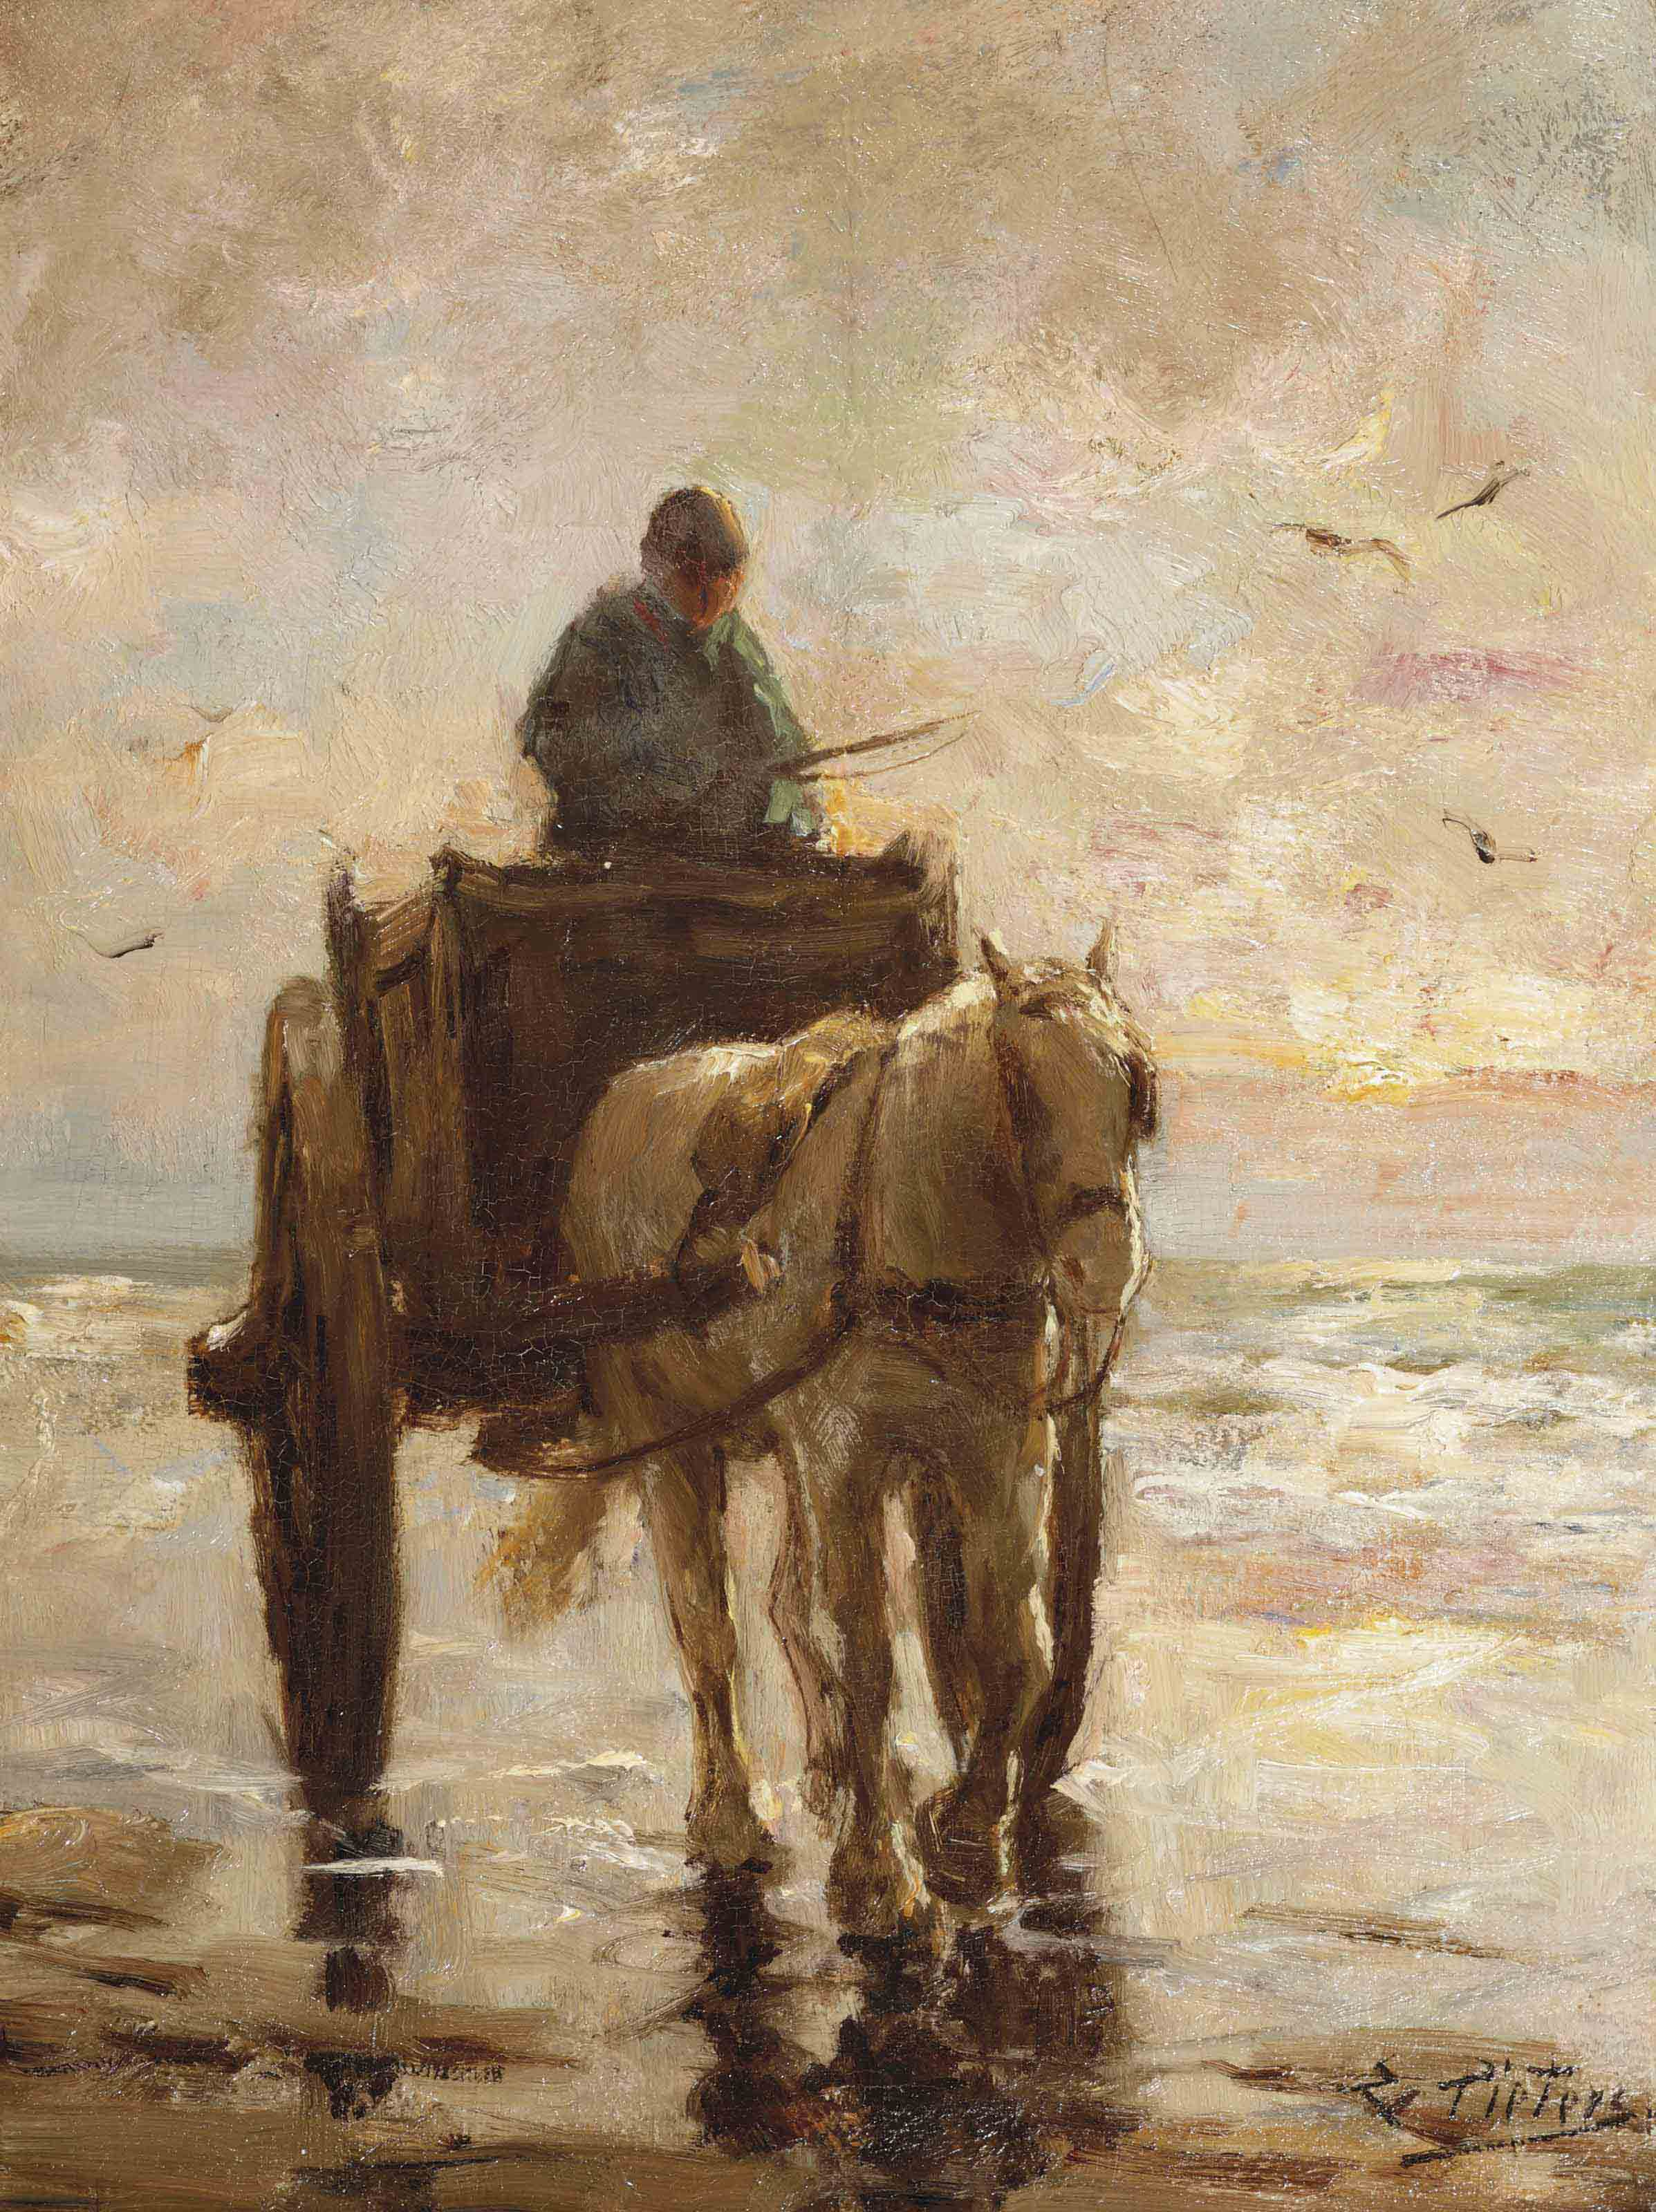 A shell-fisher and his horse at sunset